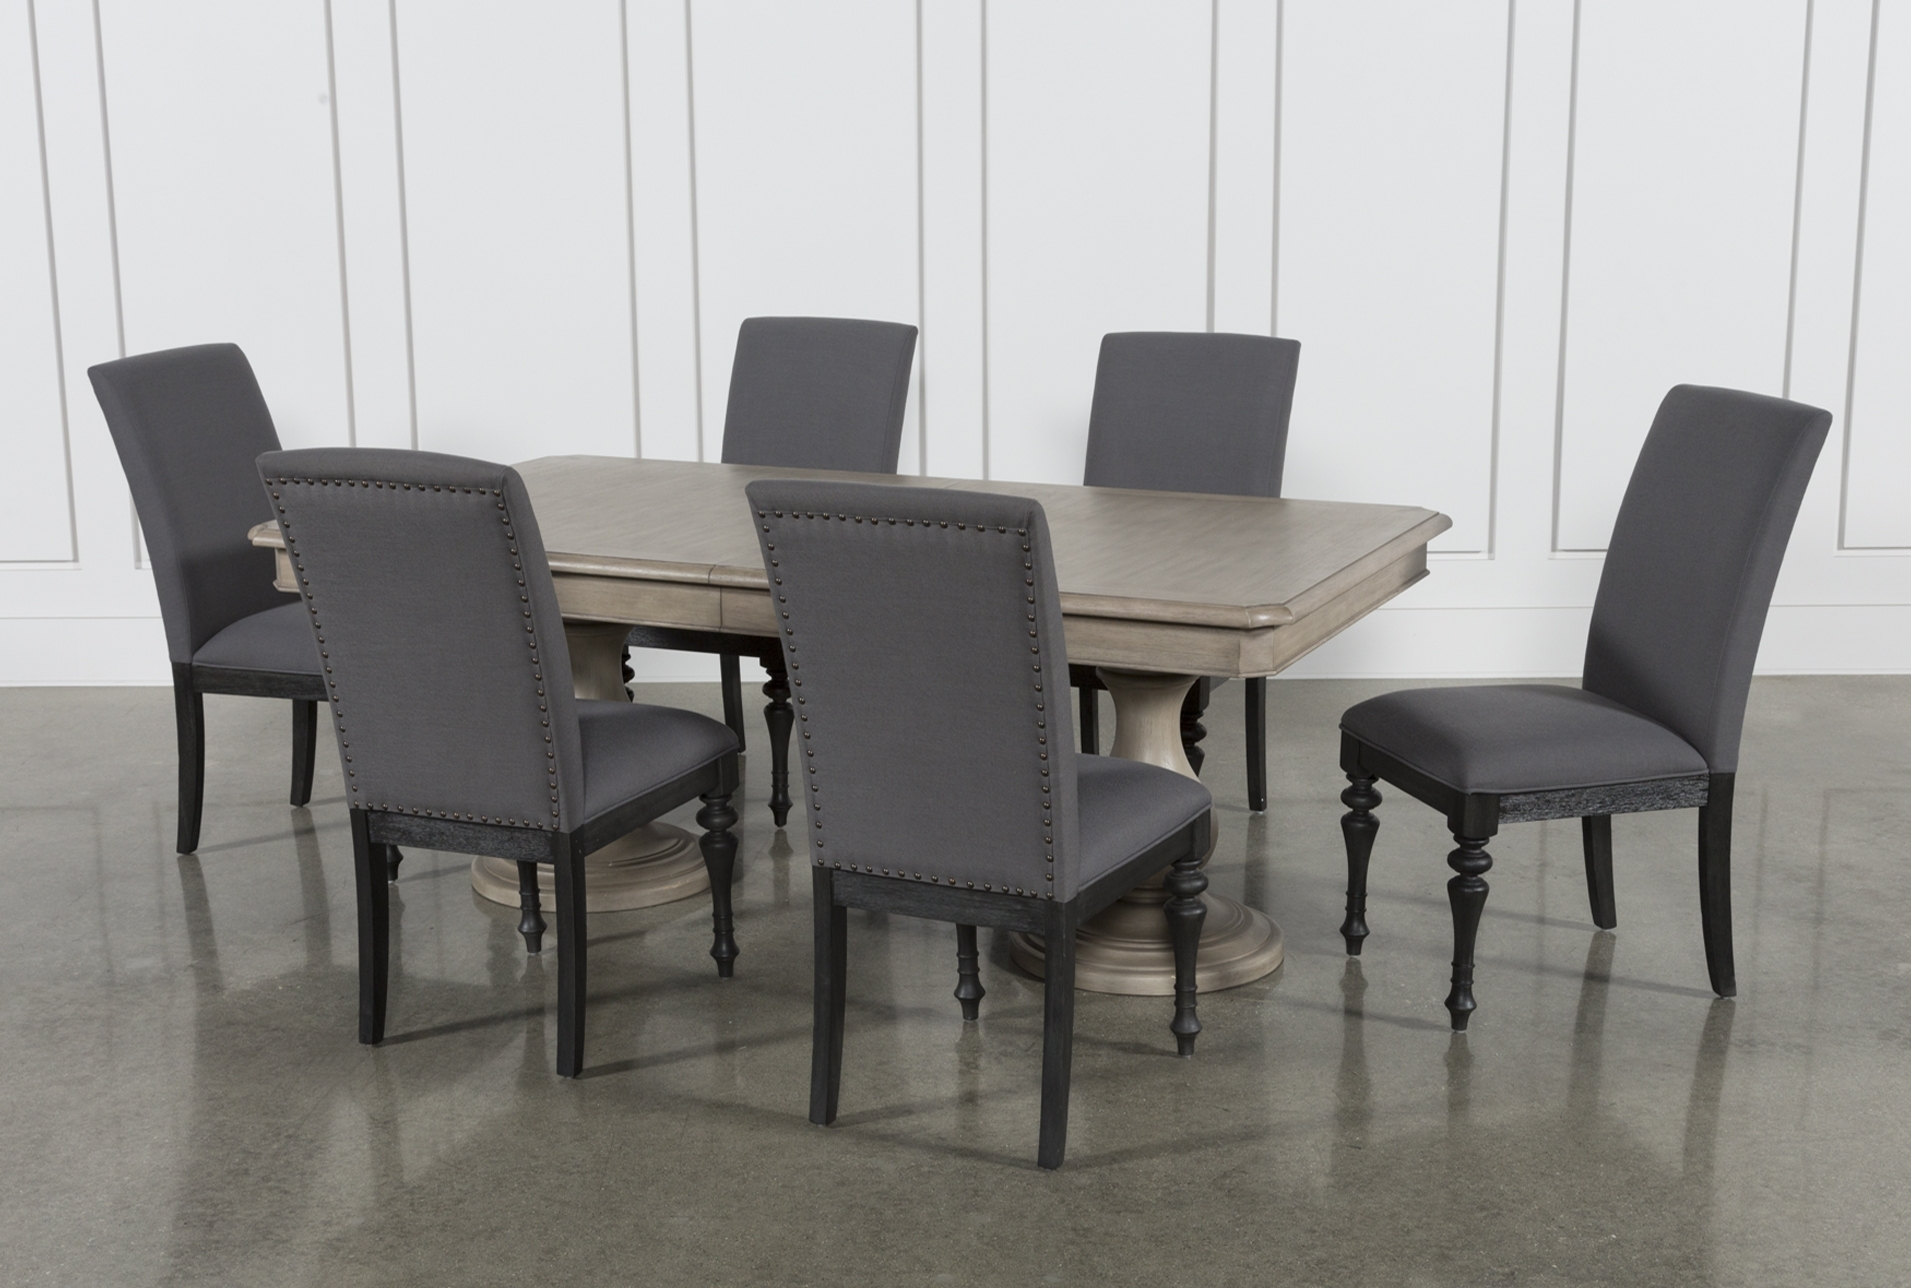 Recent Chapleau Ii 7 Piece Extension Dining Tables With Side Chairs Intended For Have To Have It (View 9 of 25)